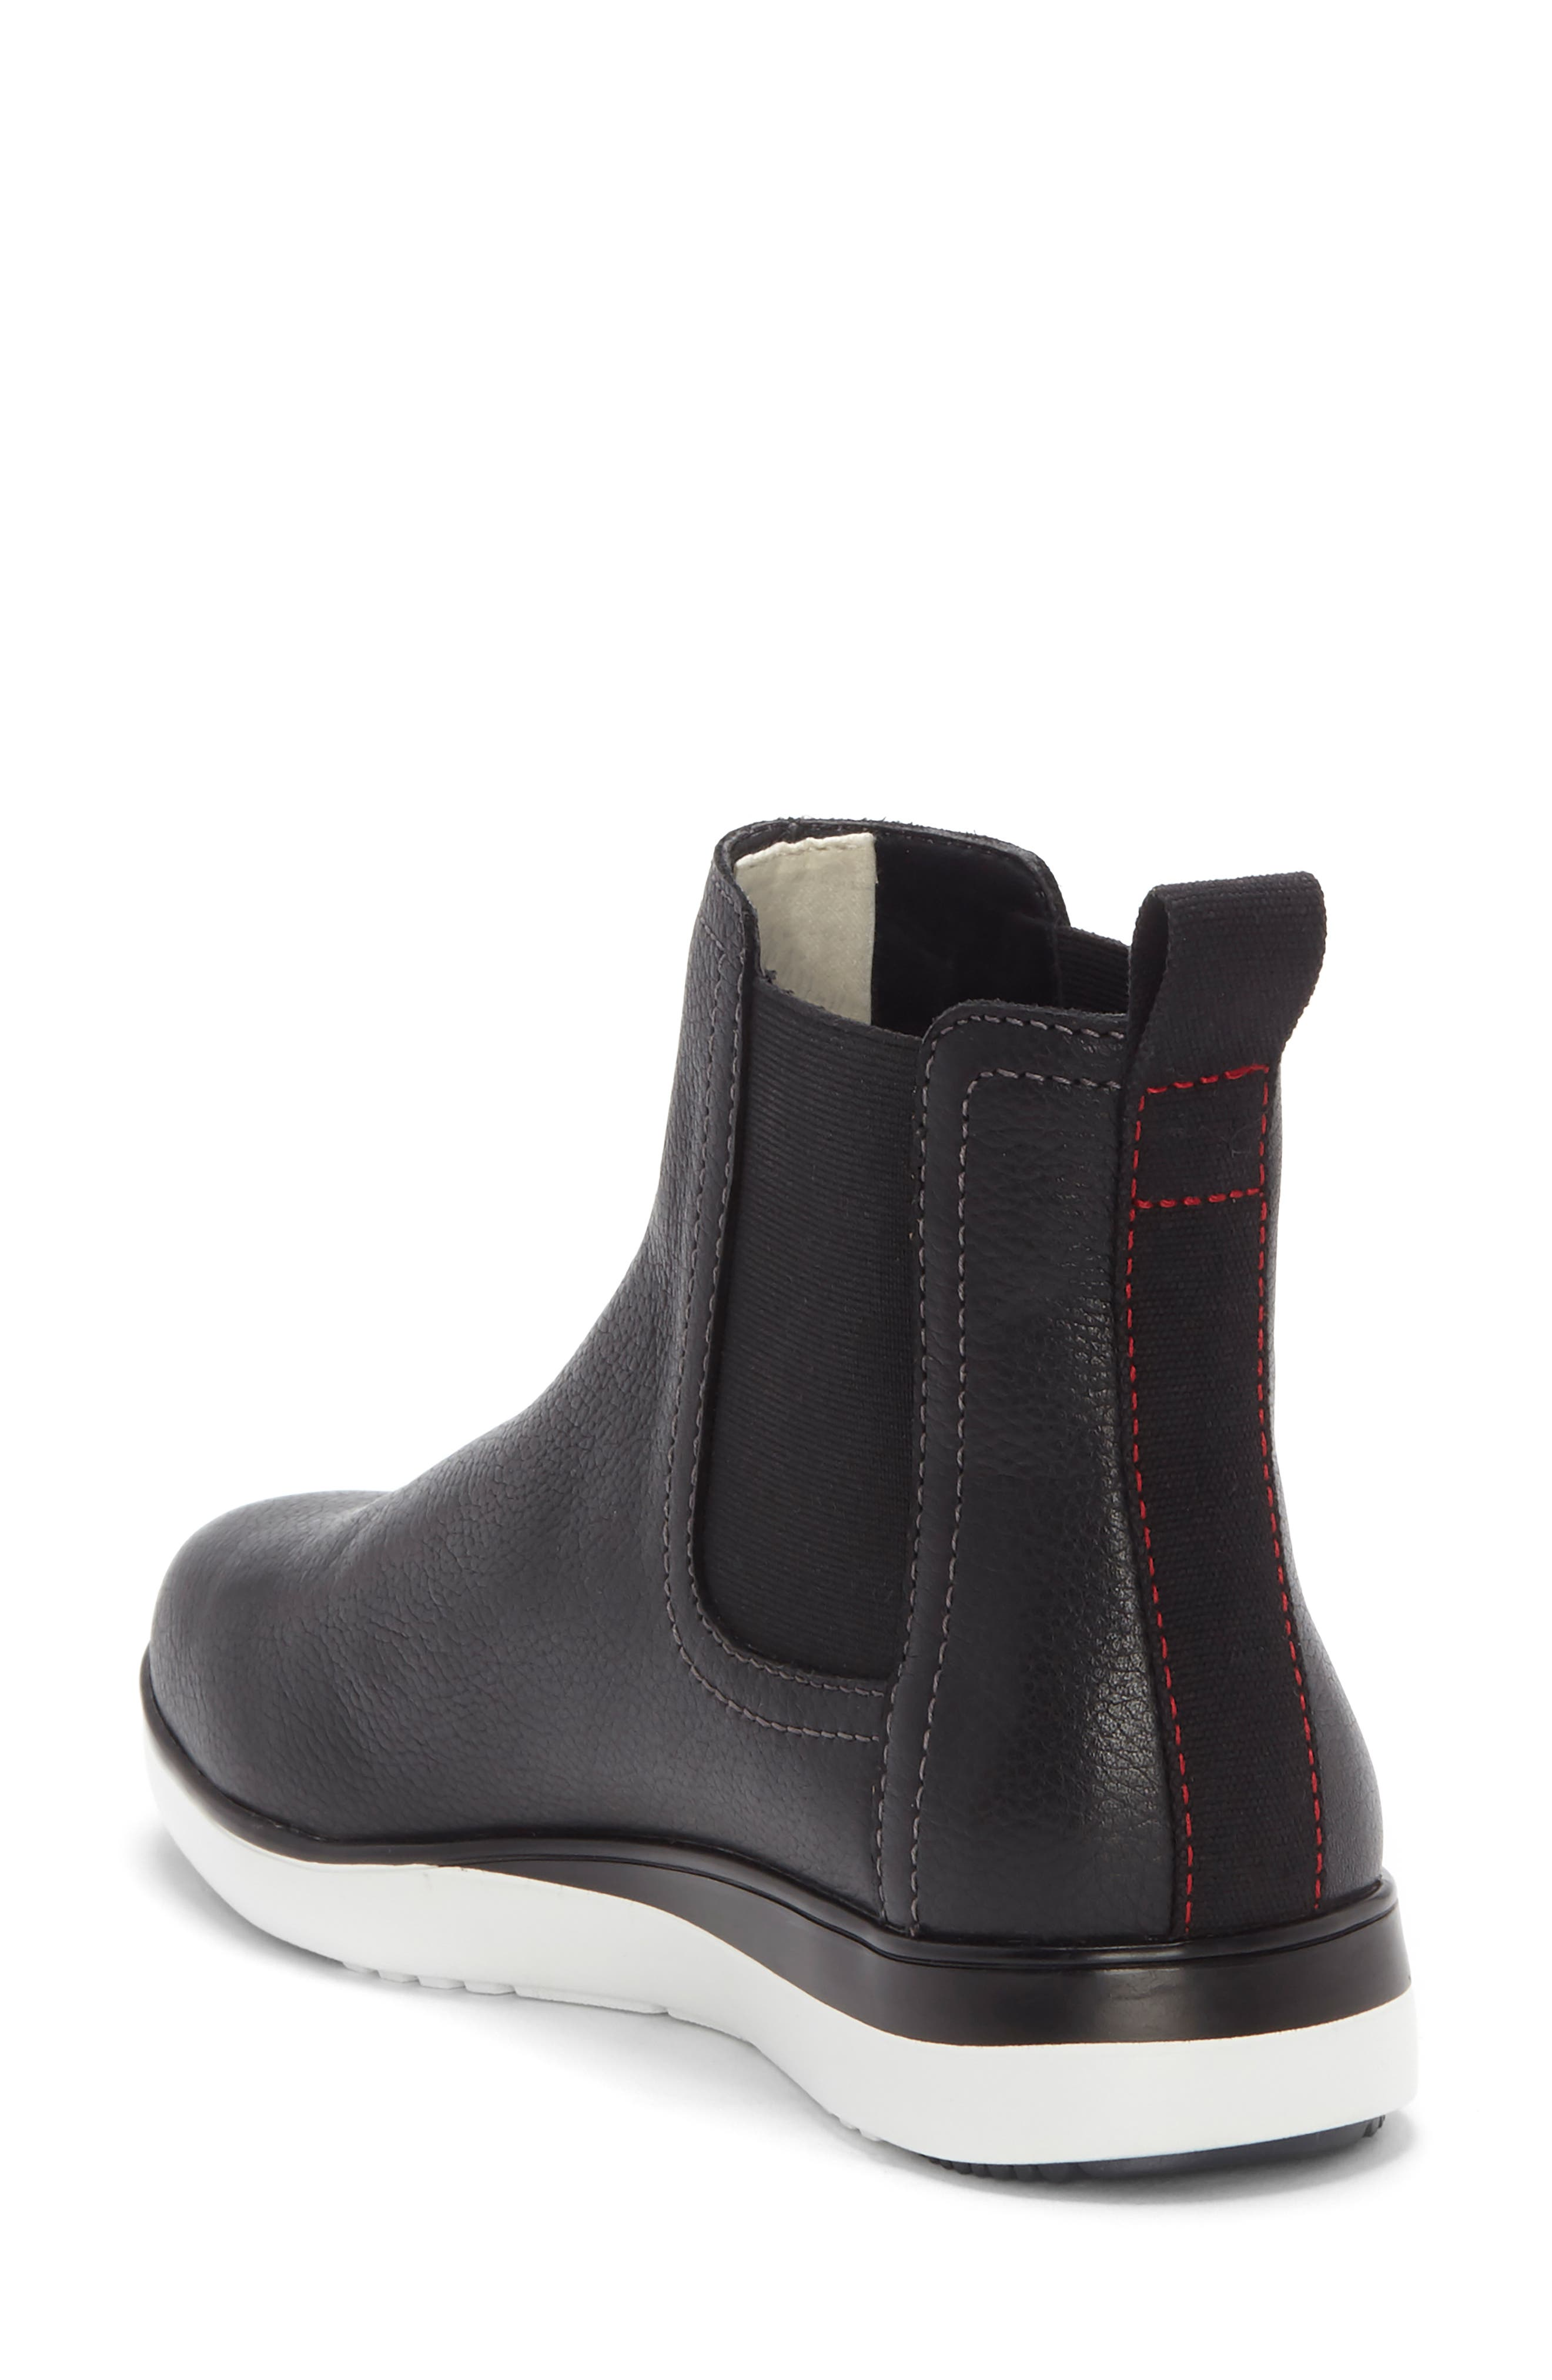 Alvarie Chelsea Bootie,                             Alternate thumbnail 2, color,                             BLACK LEATHER